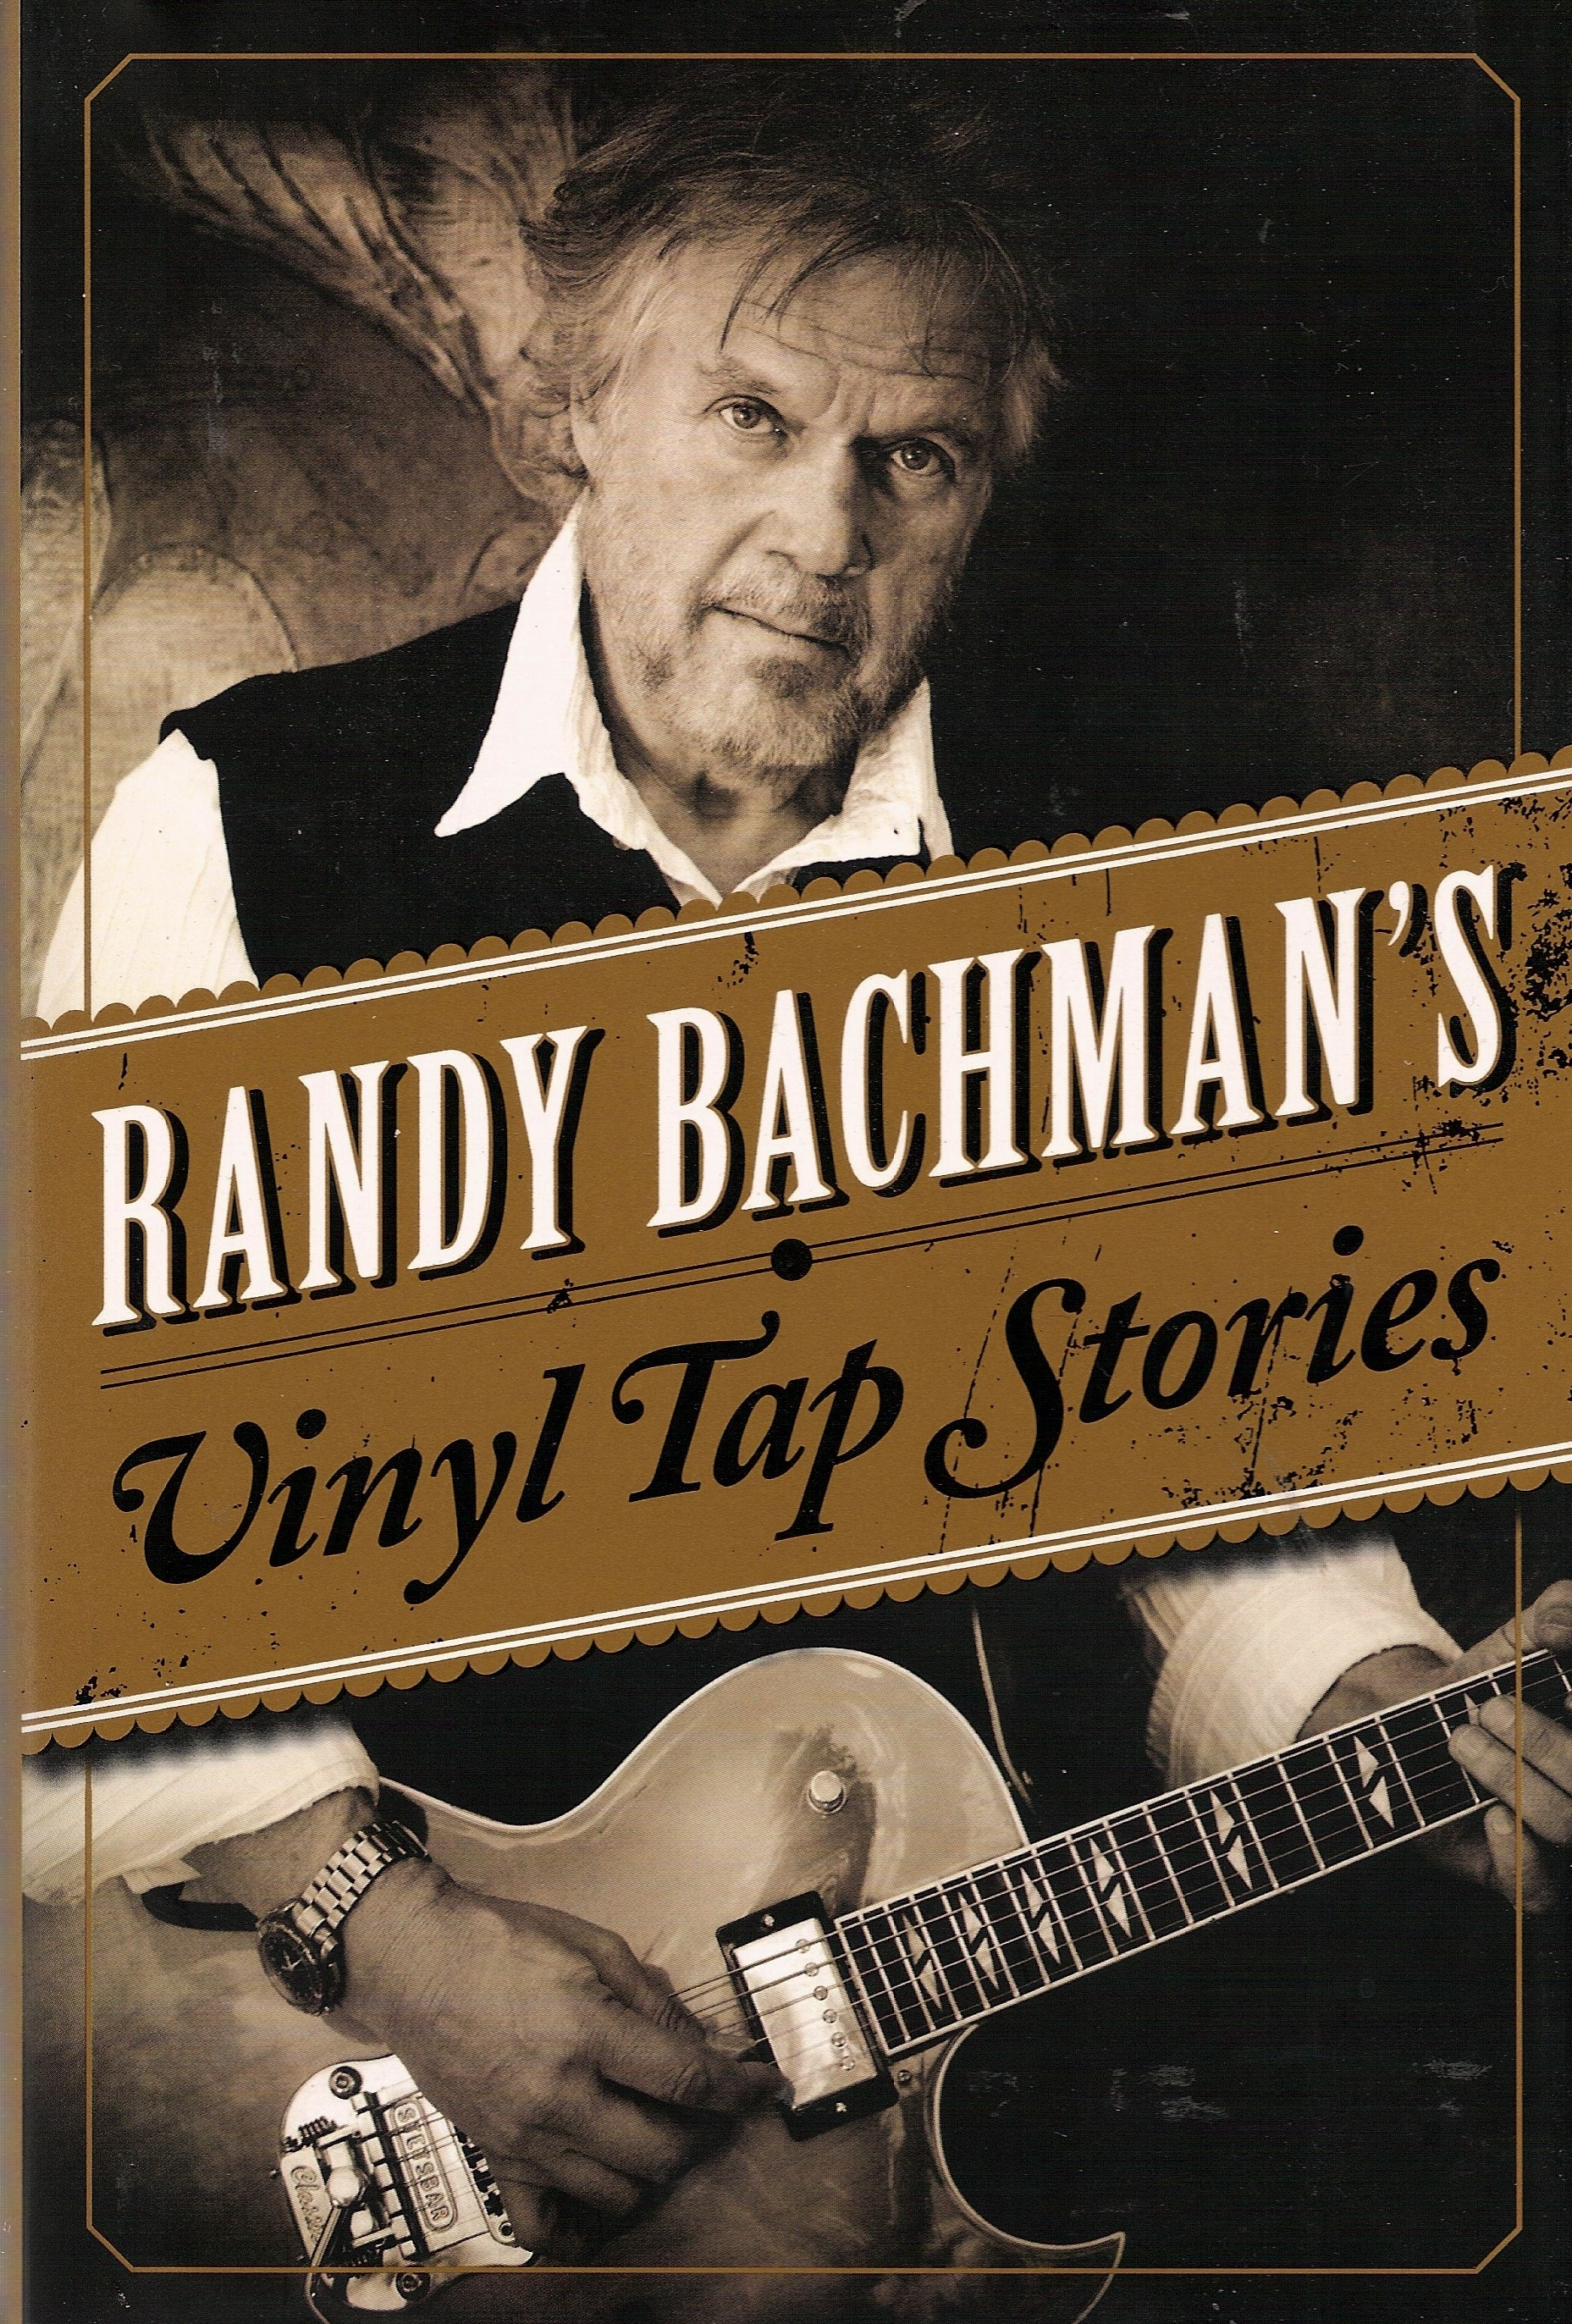 Bookends Randy Bachman And Talking Vinyl Tap Stories